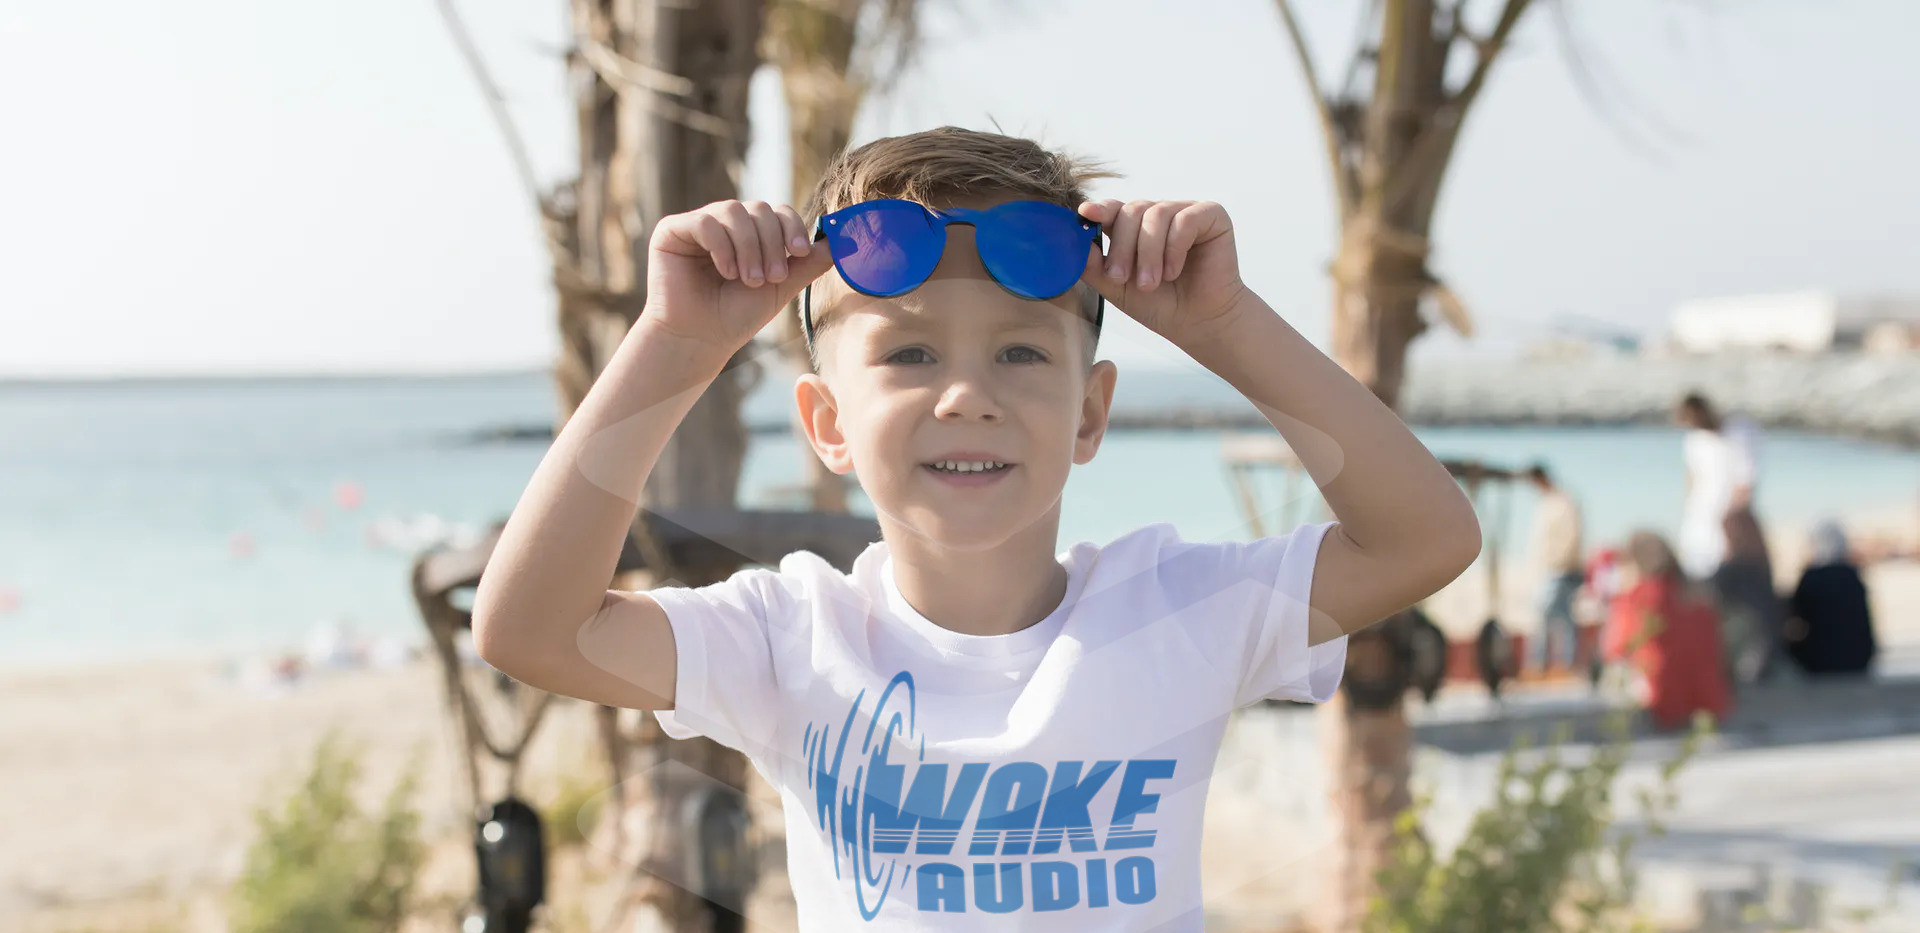 wake audio kids shirt